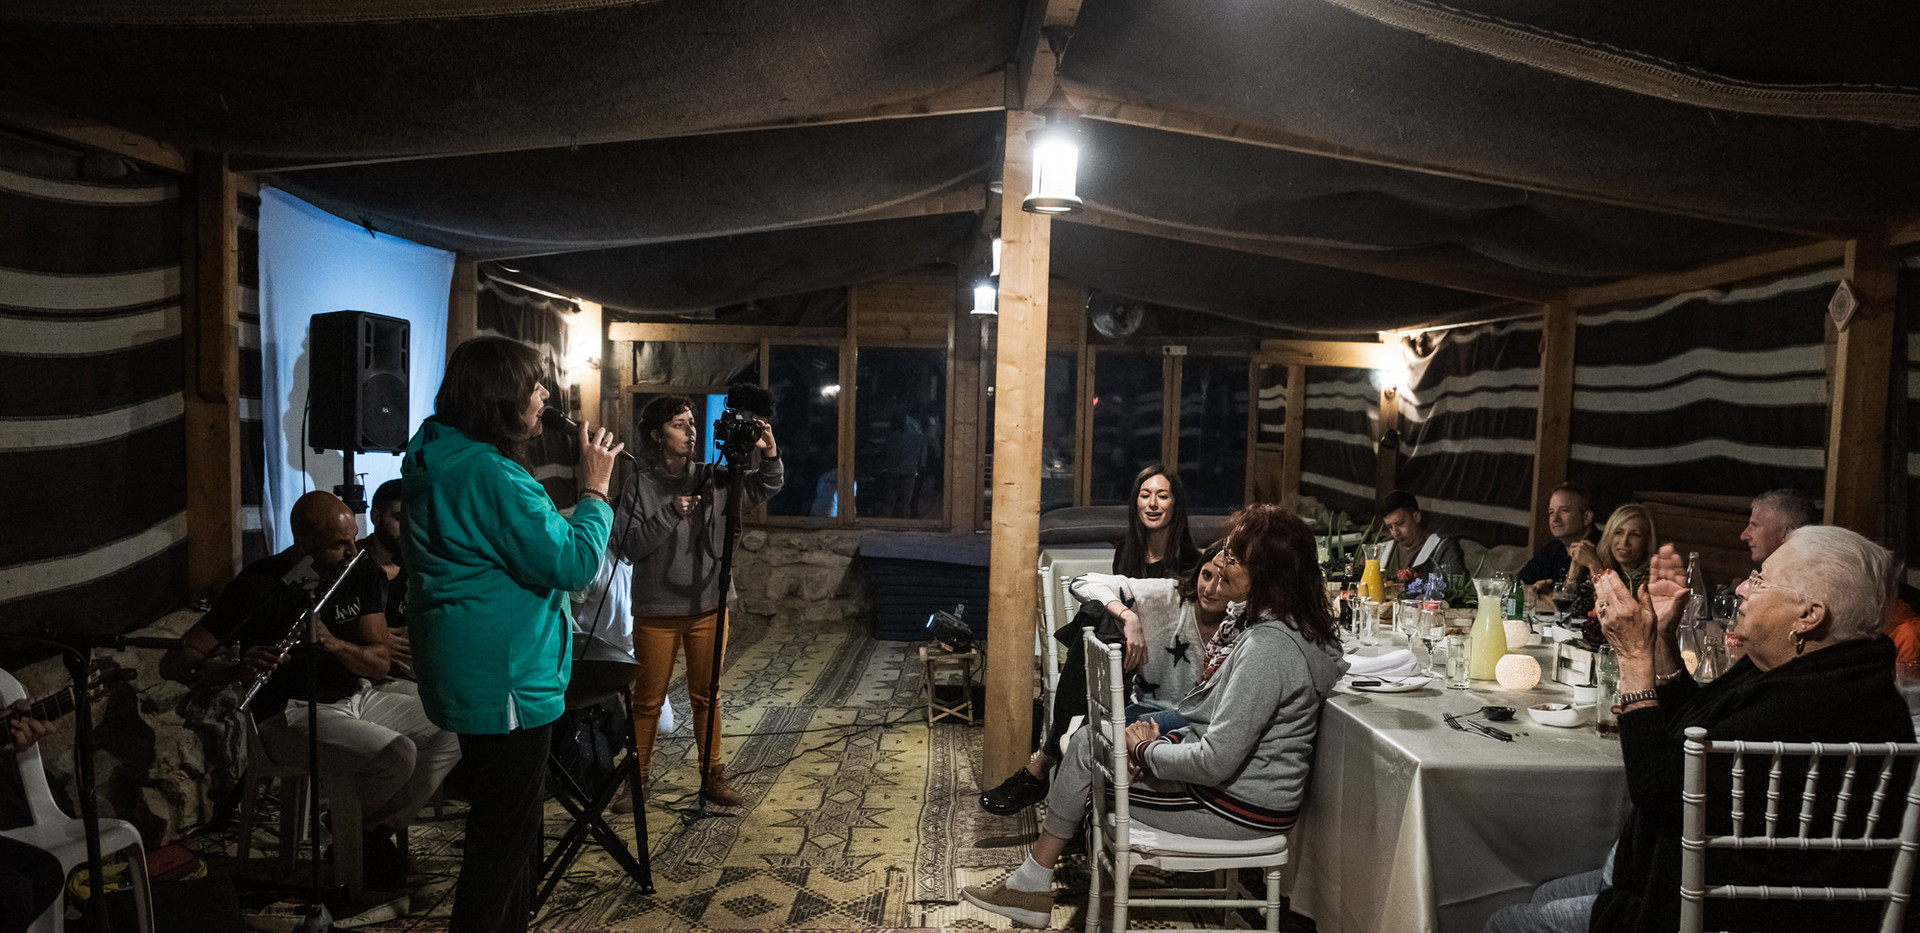 Musical Performance in the Bedouin Tent